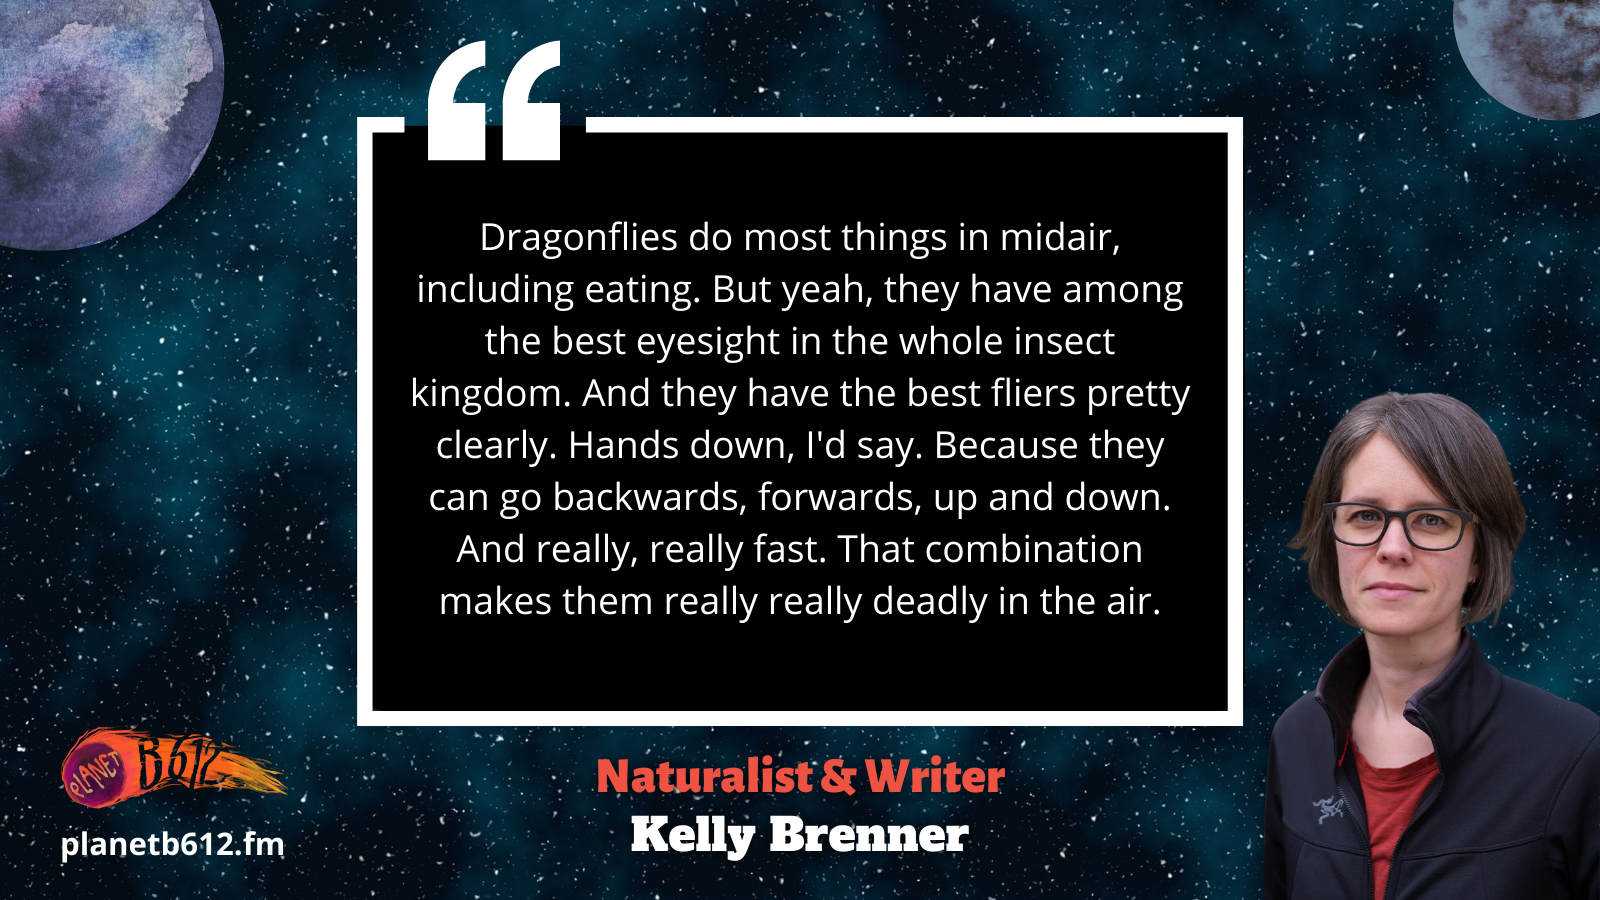 Kelly talks about dragonflies